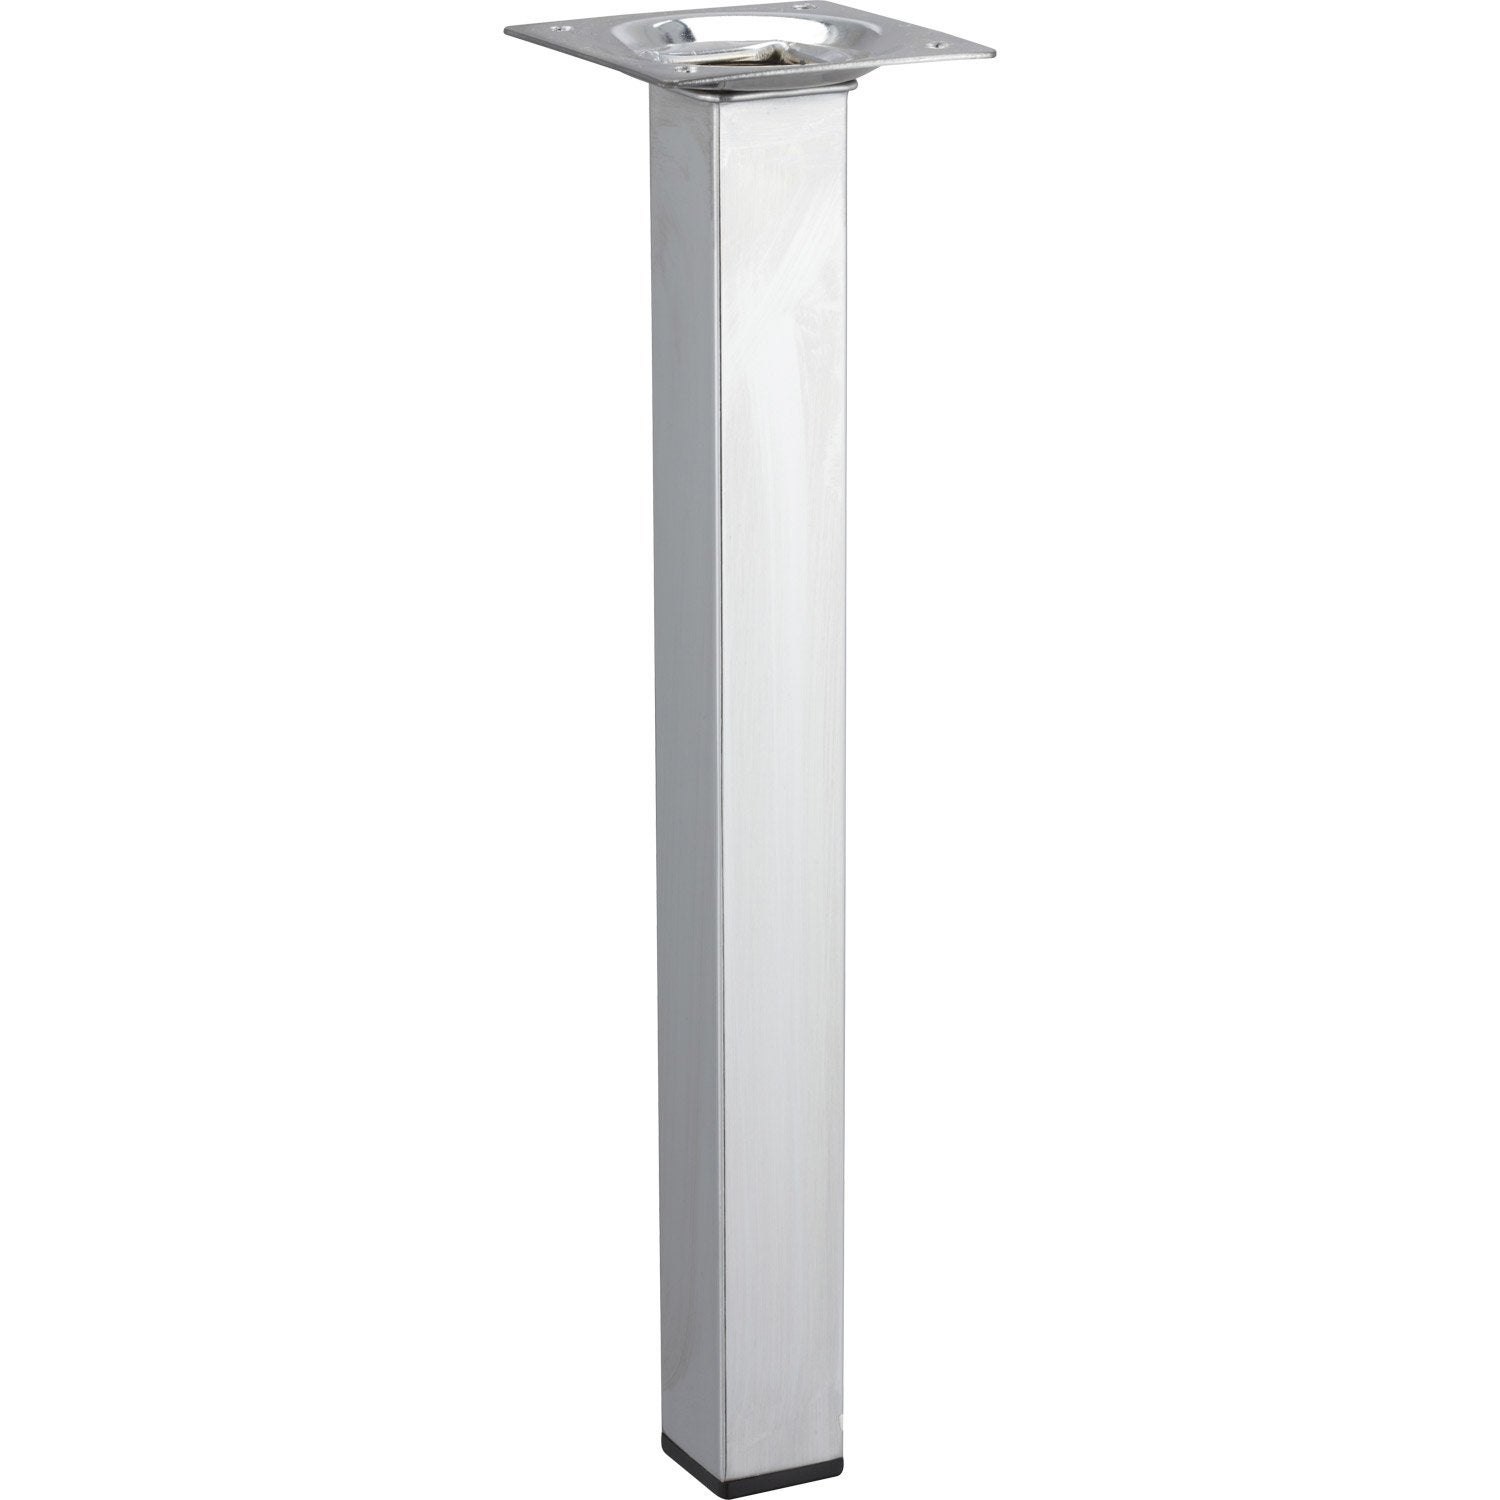 Pied de table basse carr fixe en acier chrom gris 25cm leroy merlin - Pied de table basse leroy merlin ...